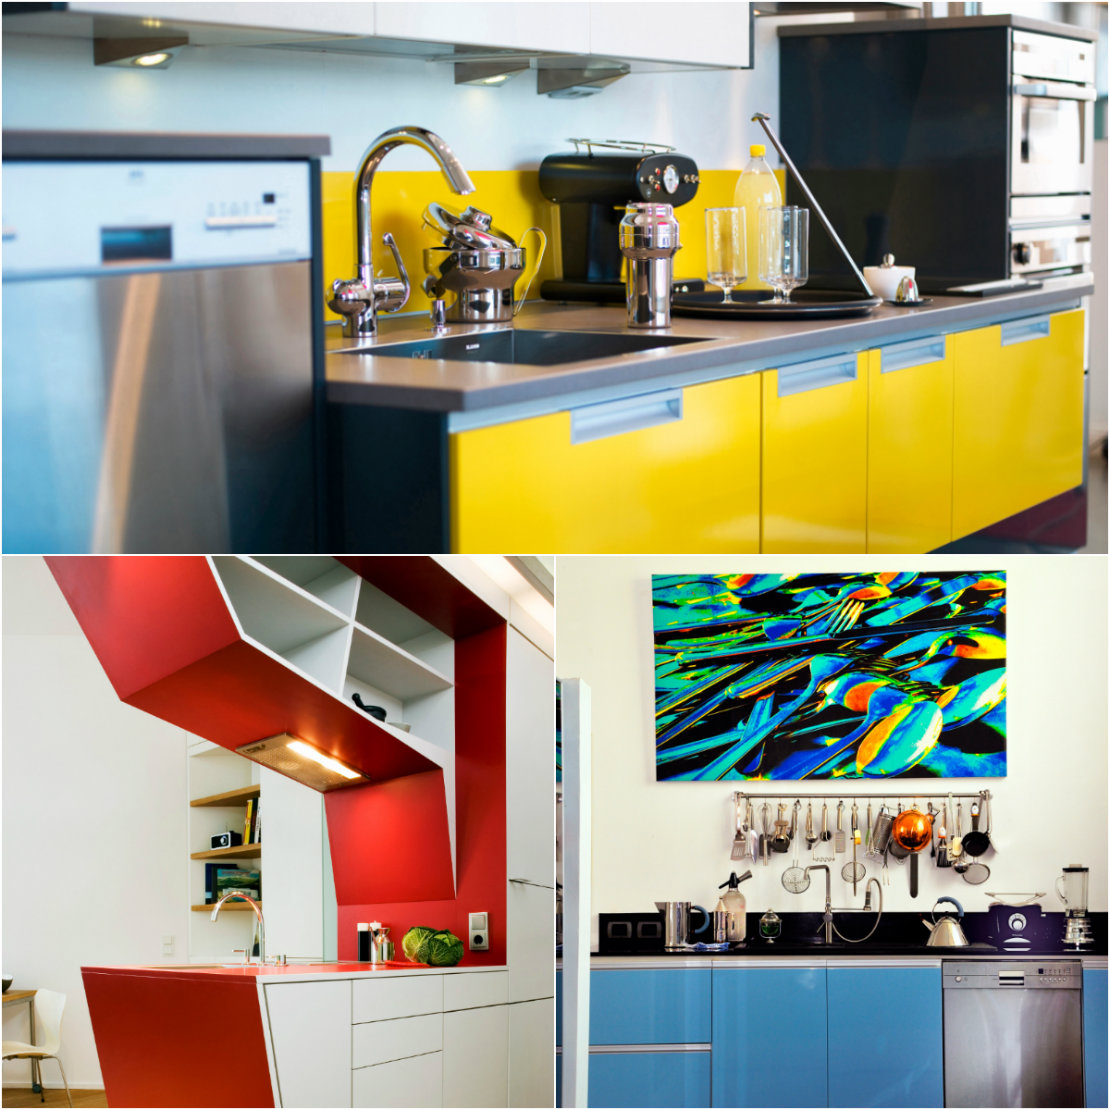 westwing-cocina-collage-colores